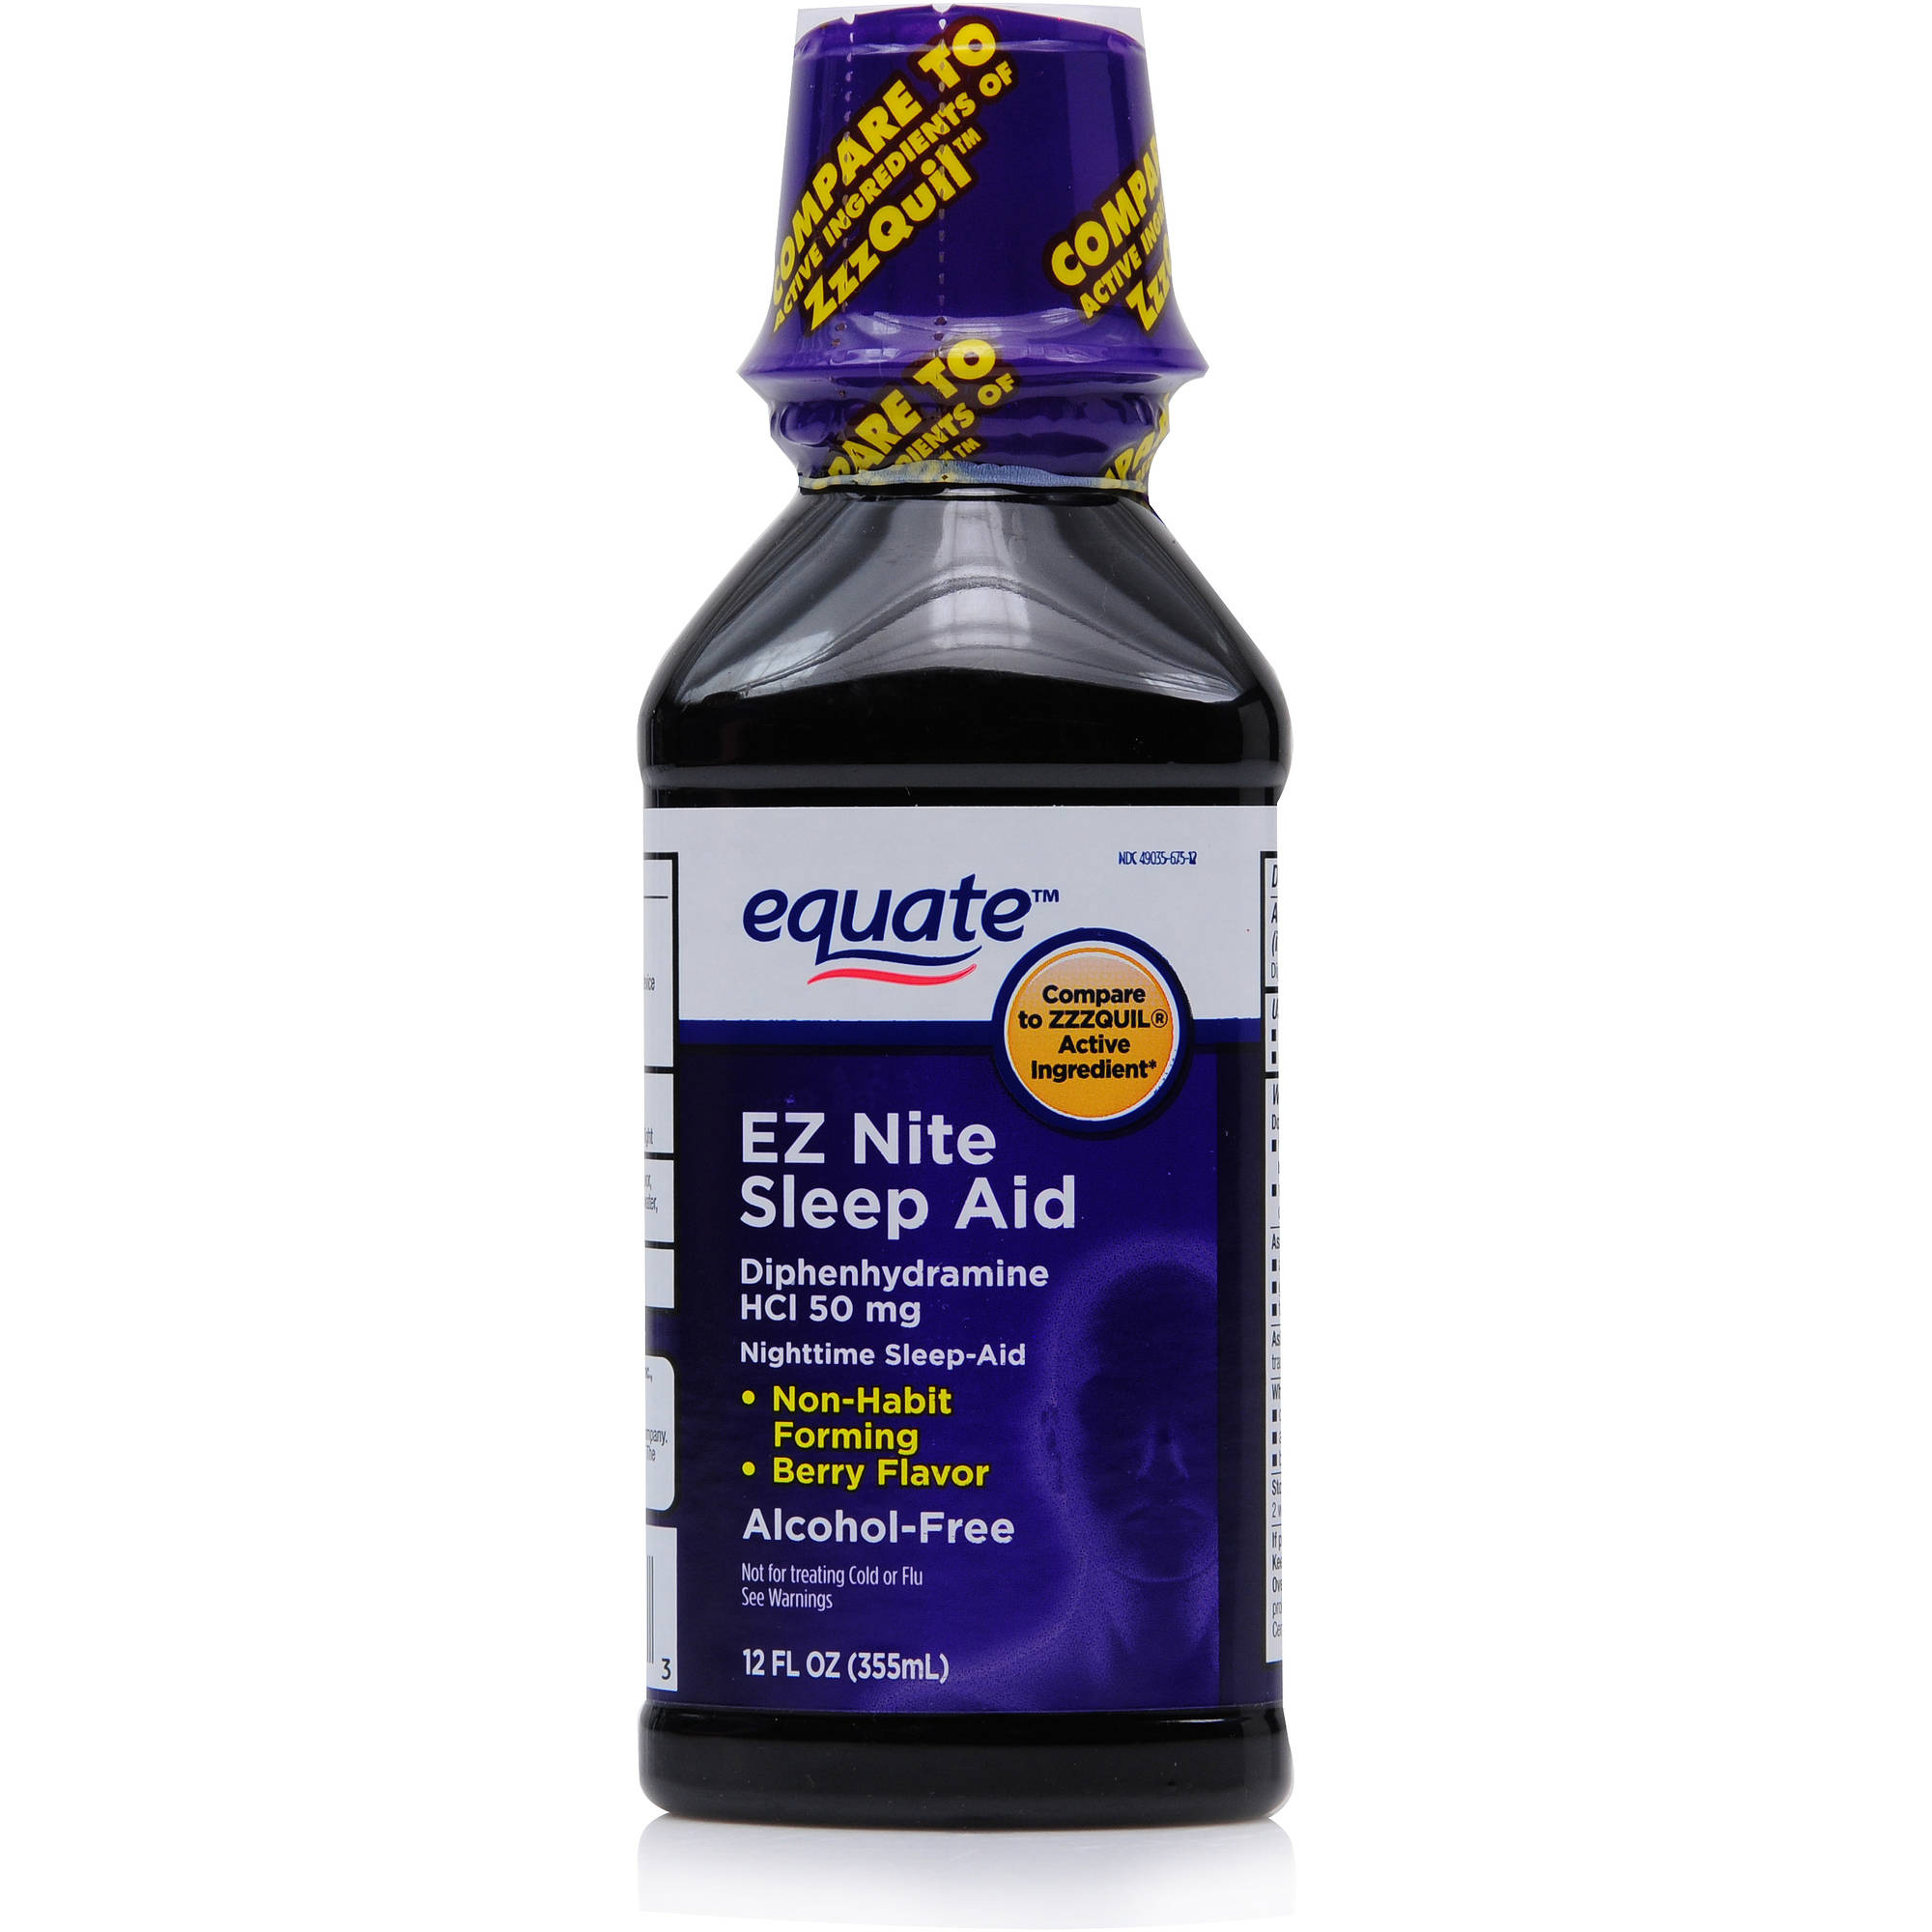 Equate alcohol free night time sleep aid, 12 Oz